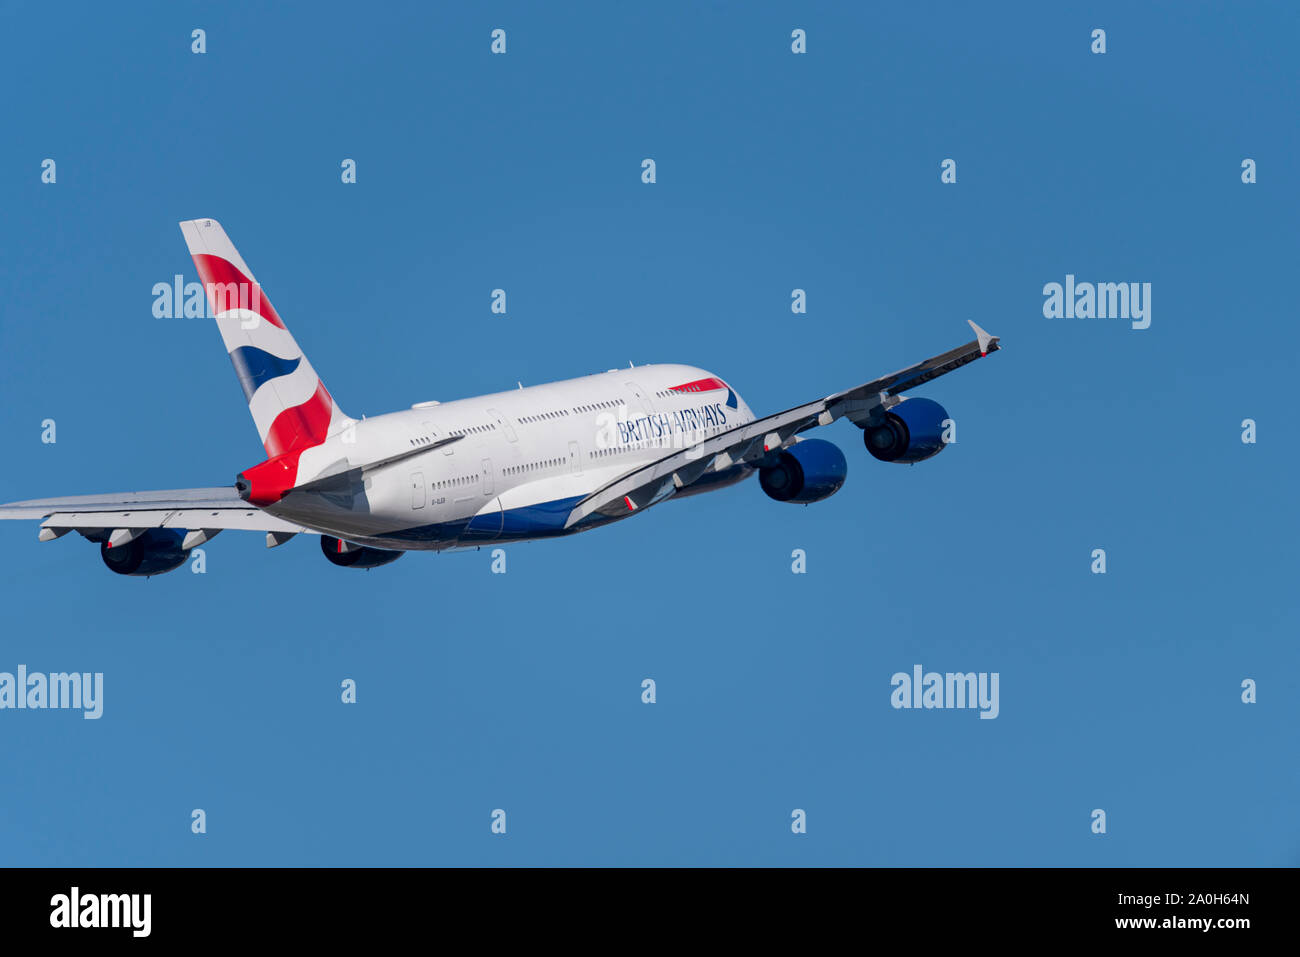 A380 800 Stock Photos & A380 800 Stock Images - Page 2 - Alamy